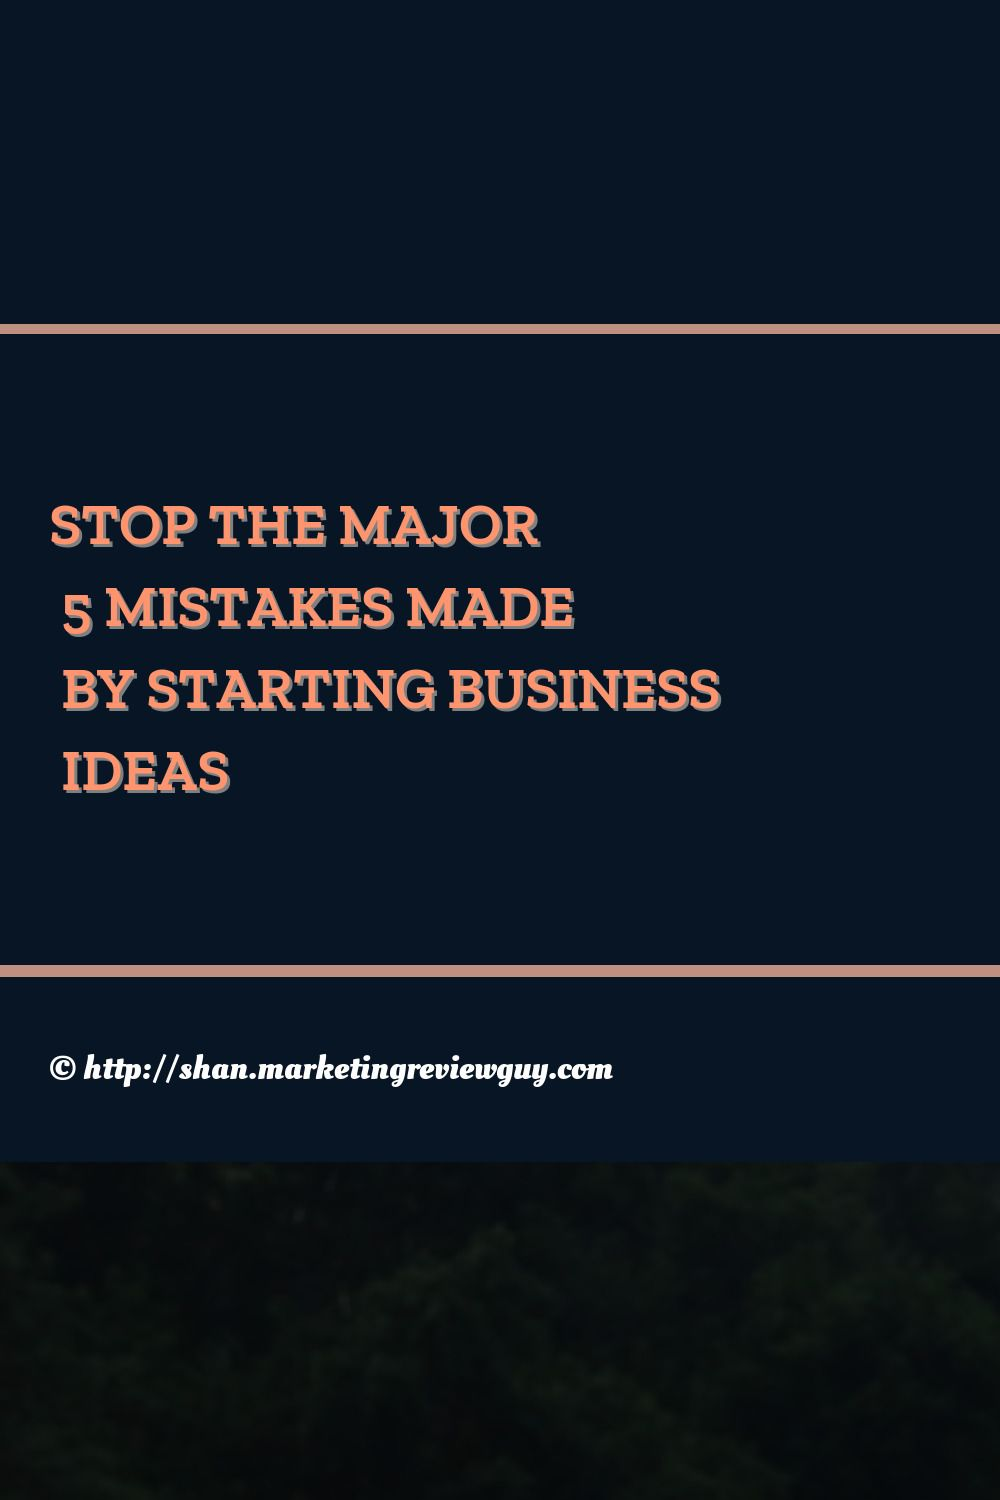 The Advantages And Disadvantages Of Business Ideas